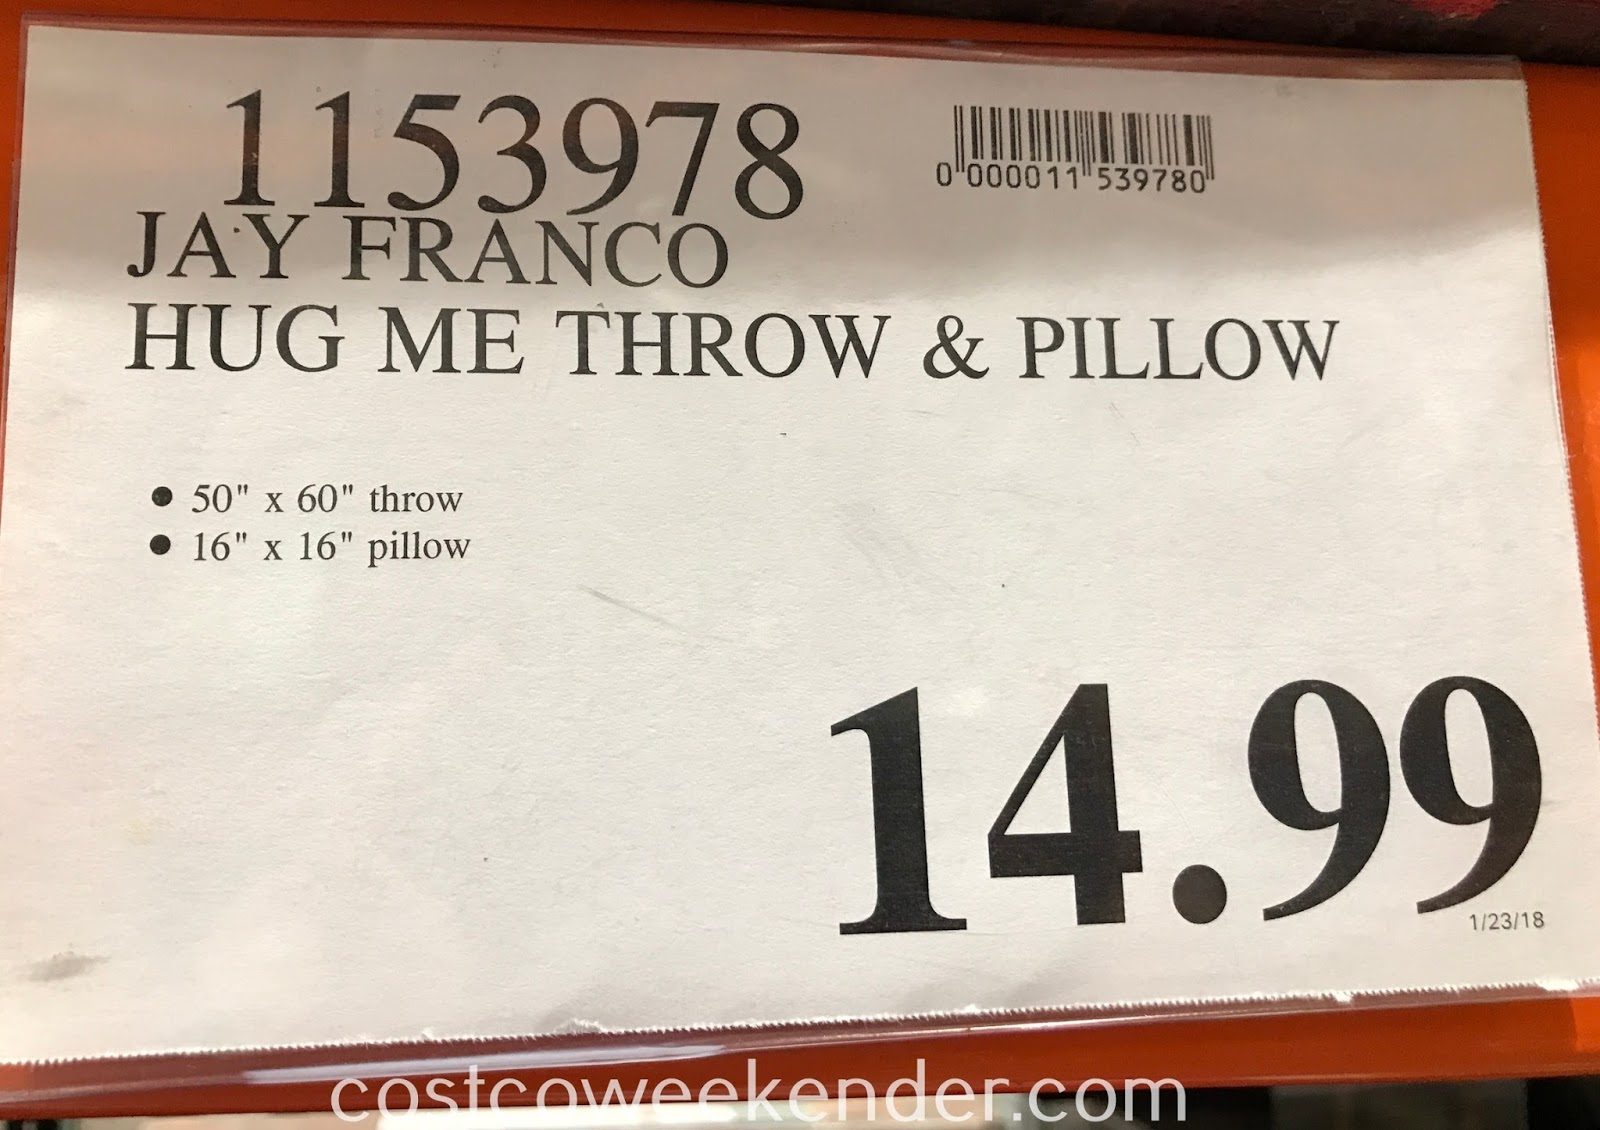 Deal for the Jay Franco and Sons Hug Me Pillow and Throw Set at Costco